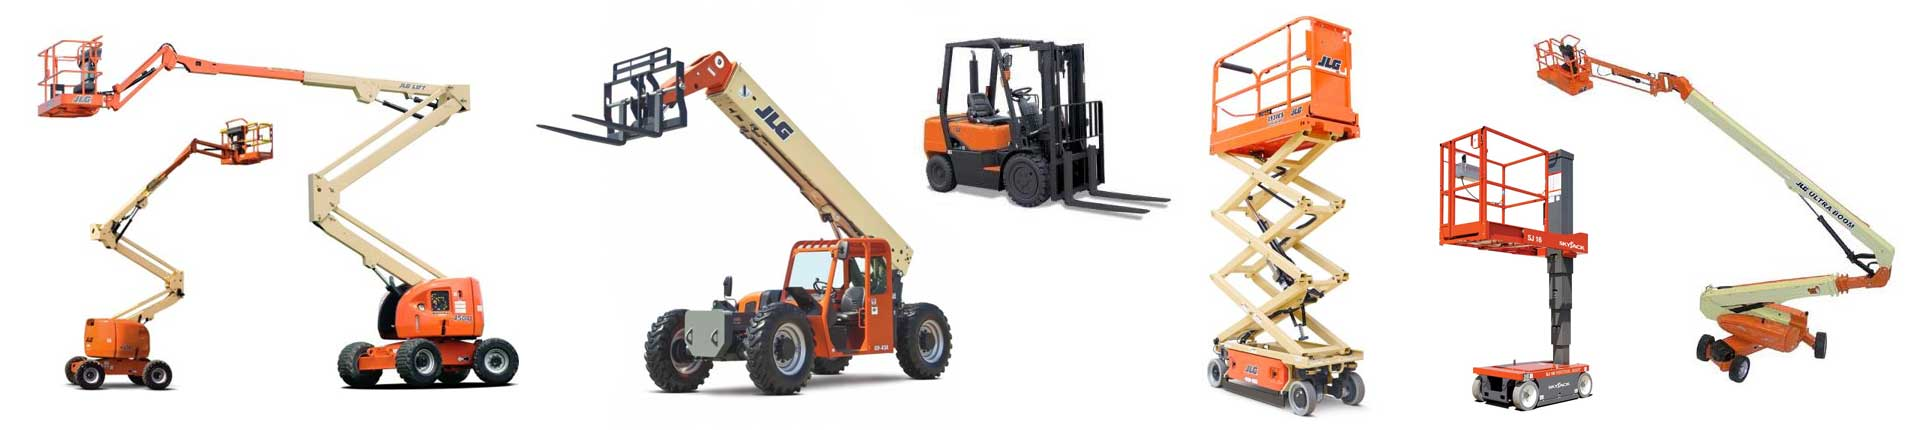 Equipment rentals in Huntsville AL, Decatur, Athens Alabama, Cullman, Florence AL, Muscle Shoals Alabama